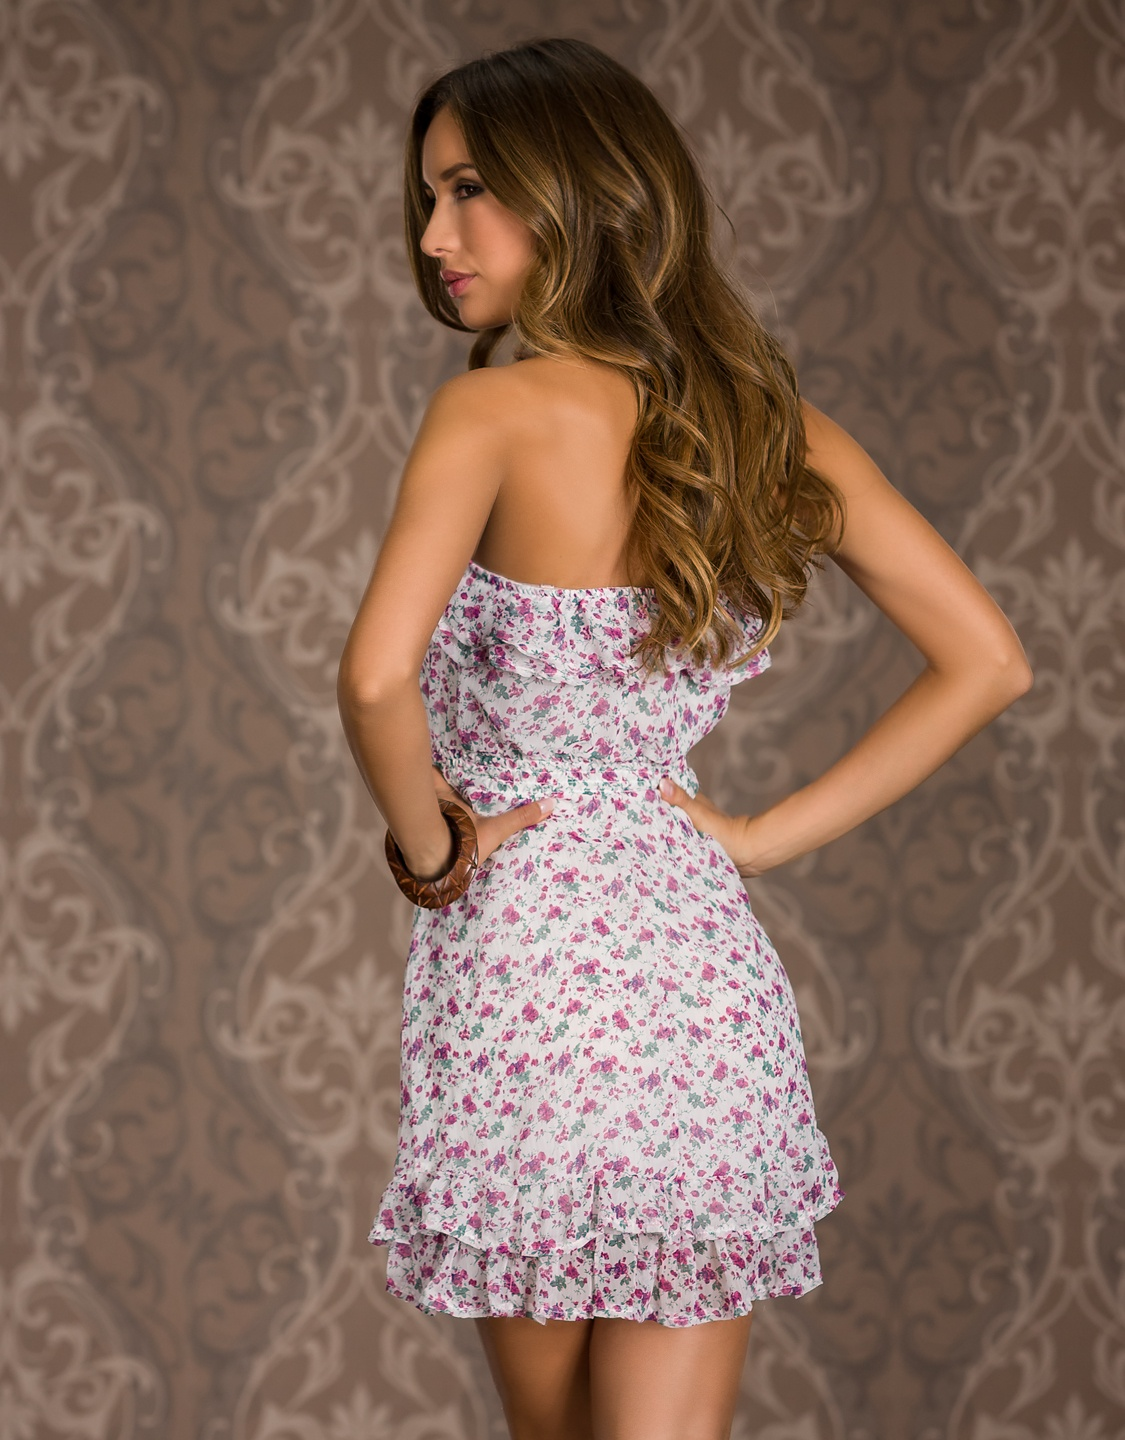 White Strapless Ruffled Summer Dress With Flower Print